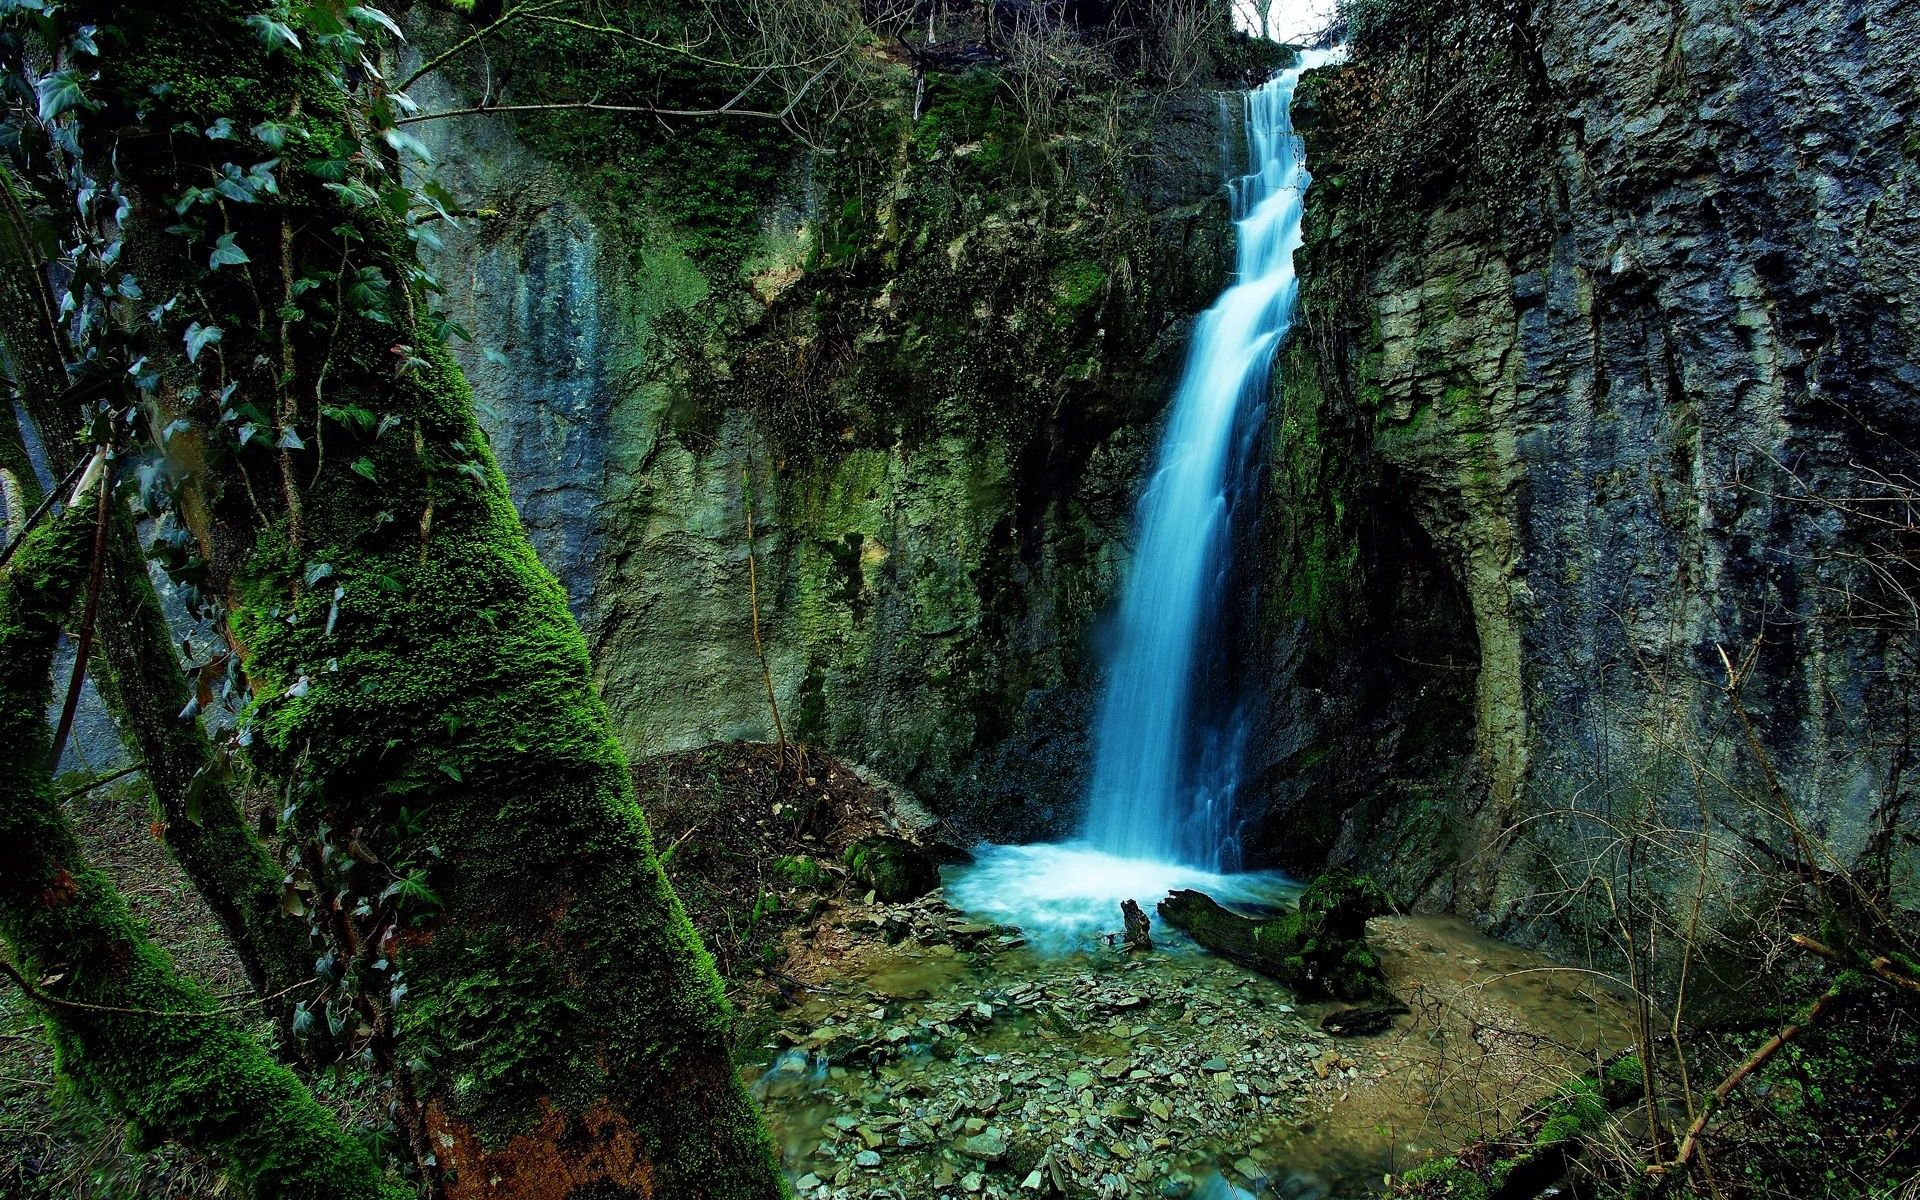 143332 download wallpaper Nature, Waterfall, Gorge, Rocks, Moss, Growths, Wood, Tree, Stones screensavers and pictures for free